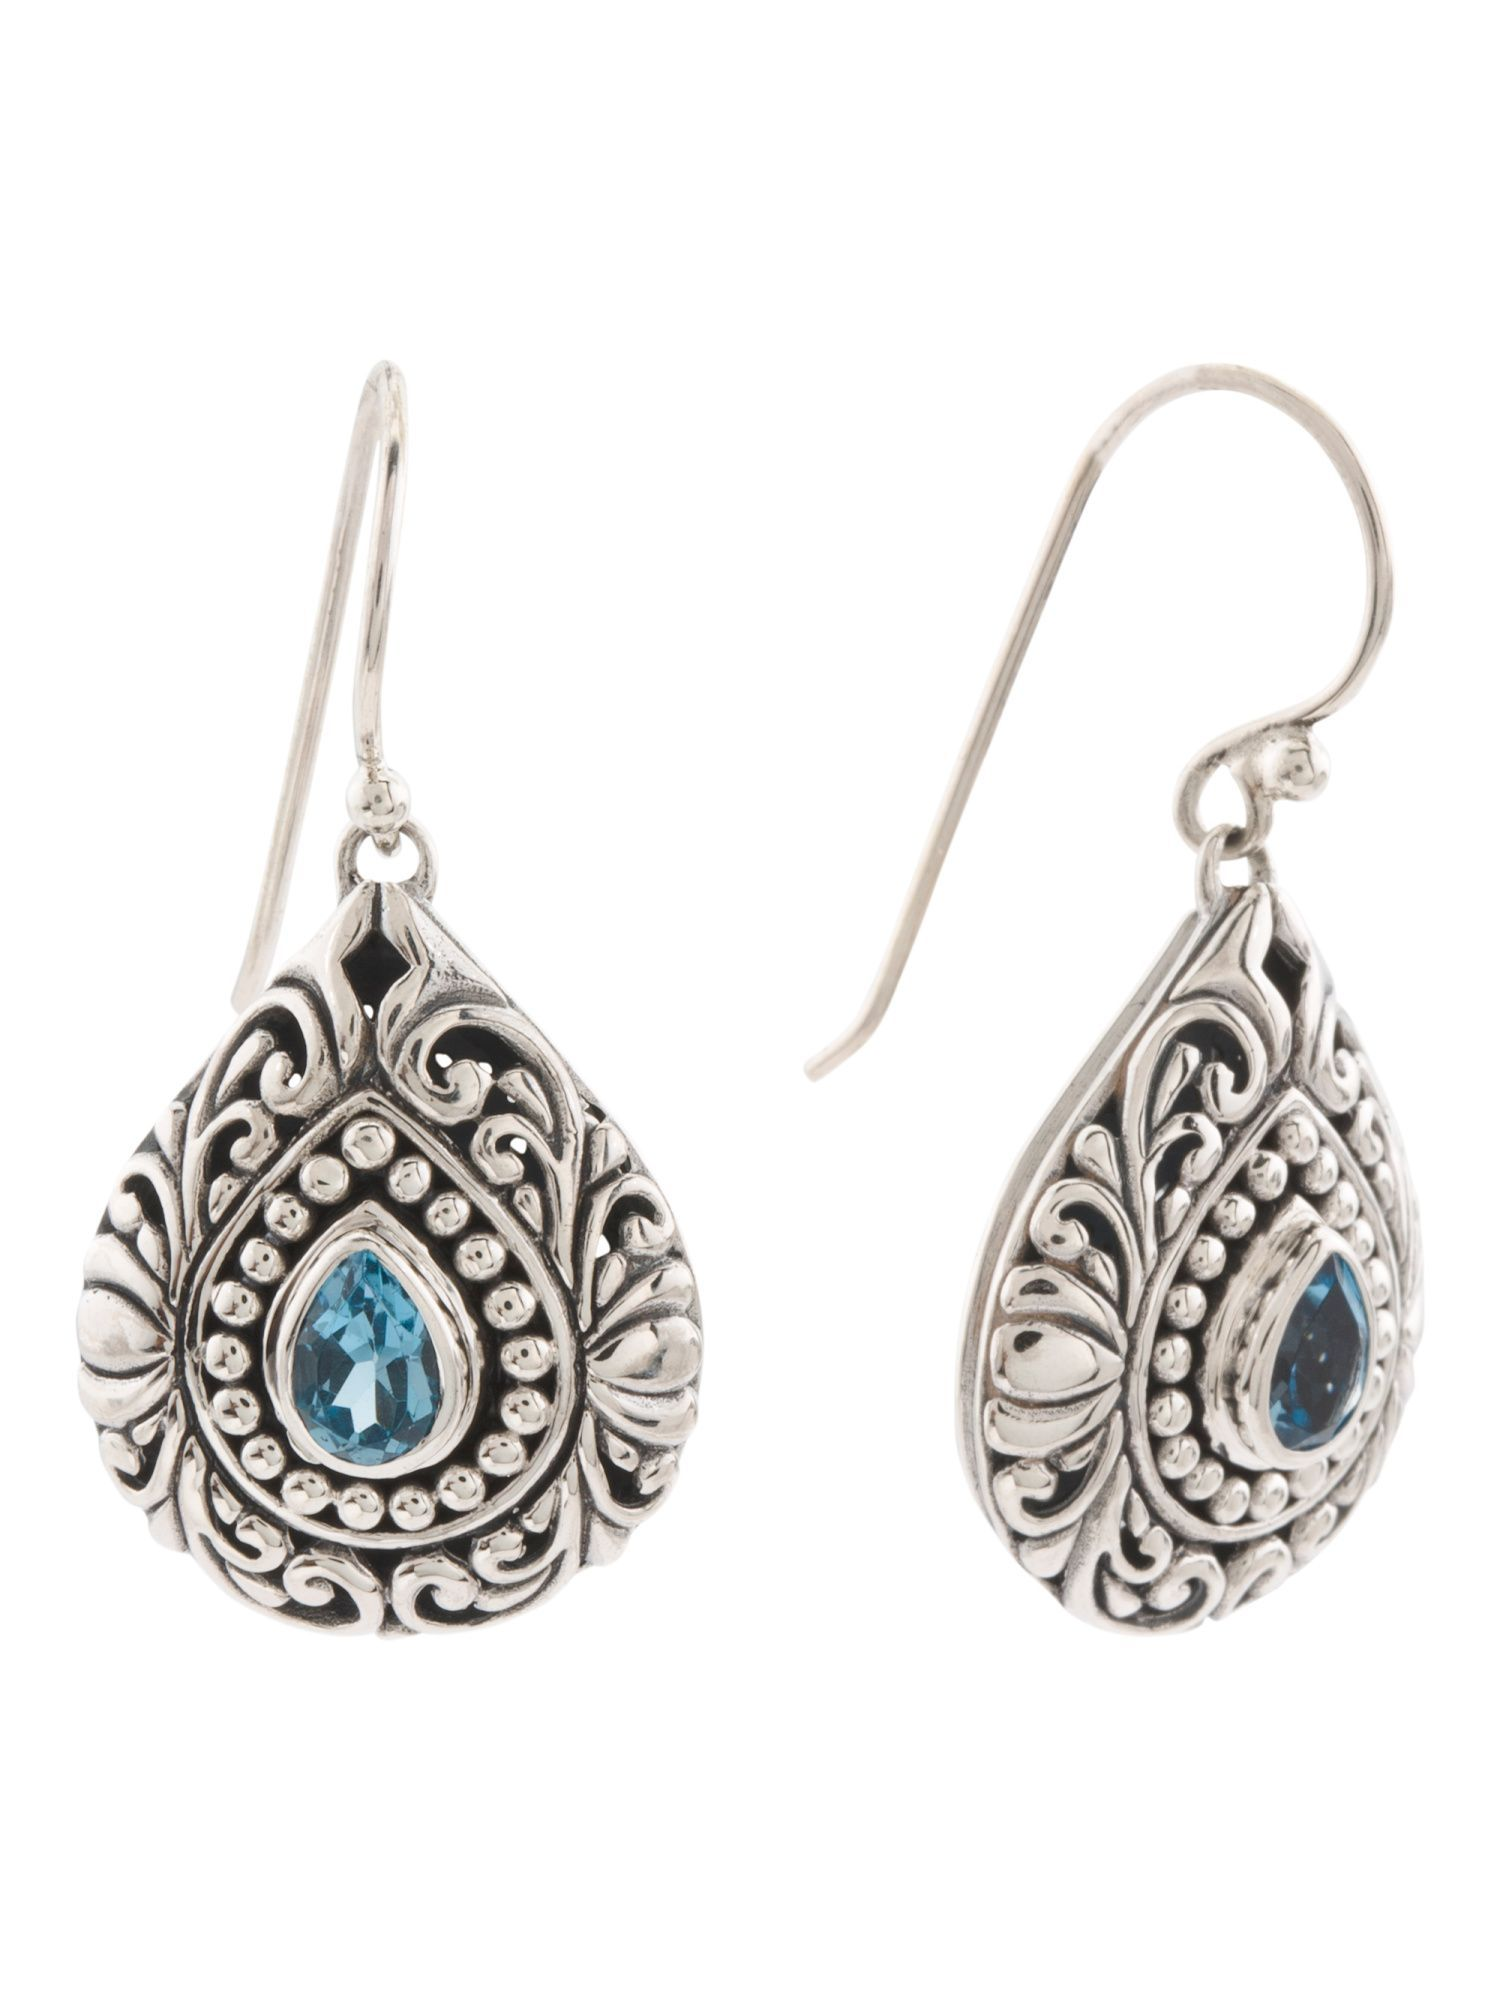 e gold arts earrings products filigree colonial oaxaca rings